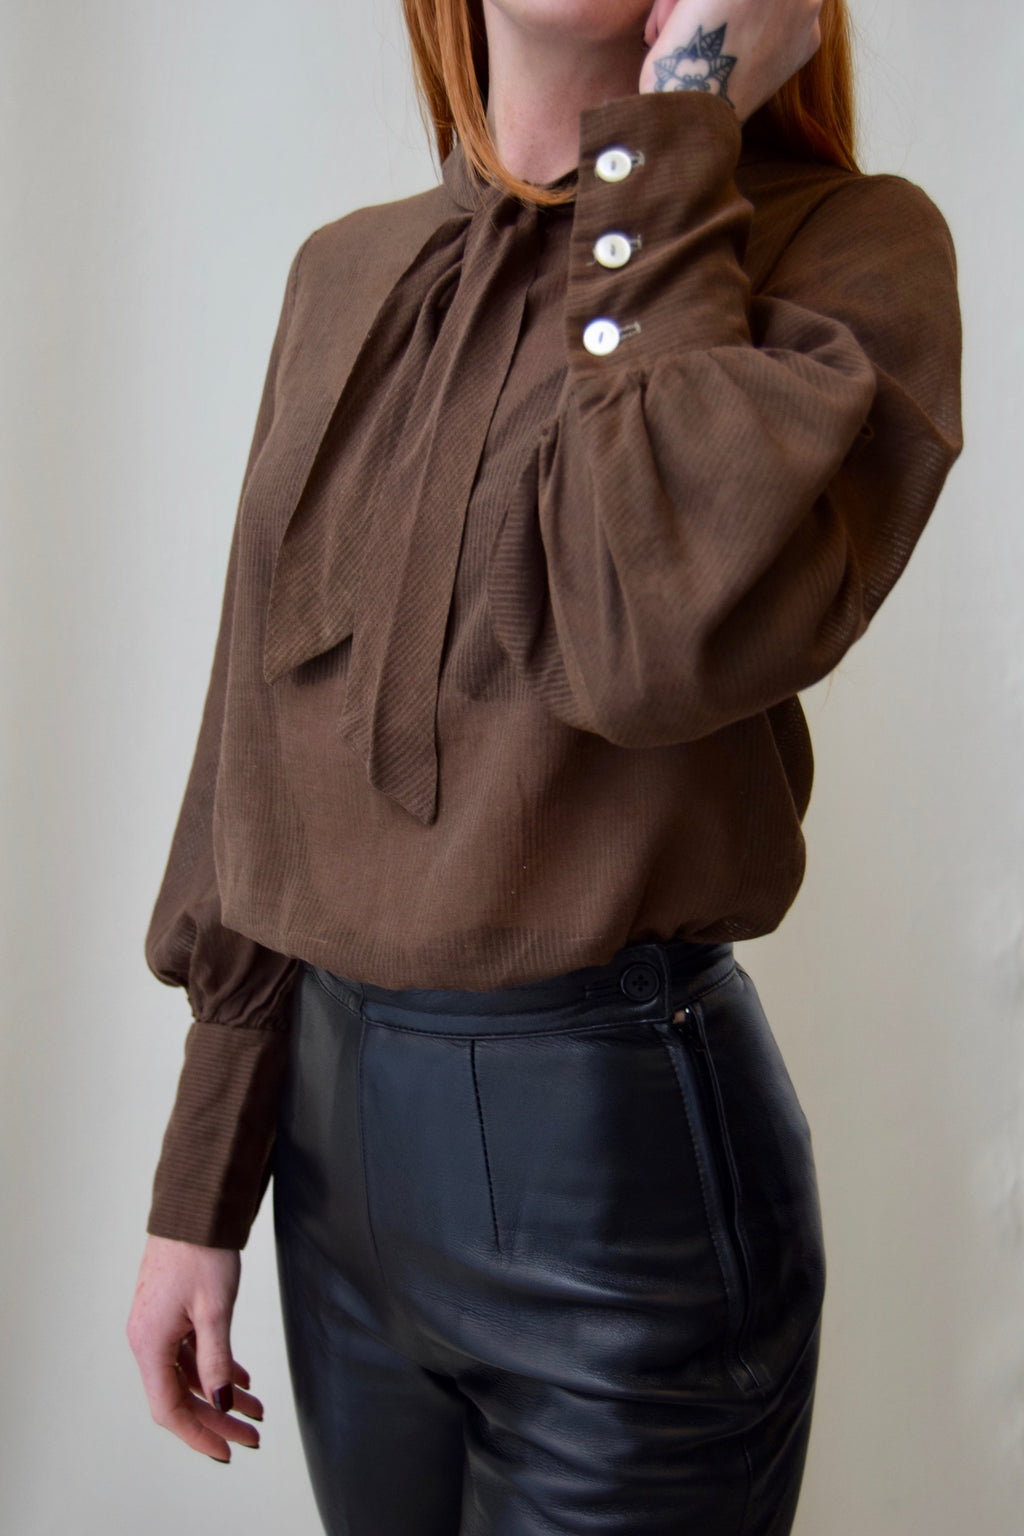 1960's Sheer Brown Striped Blouse FREE SHIPPING TO THE U.S.